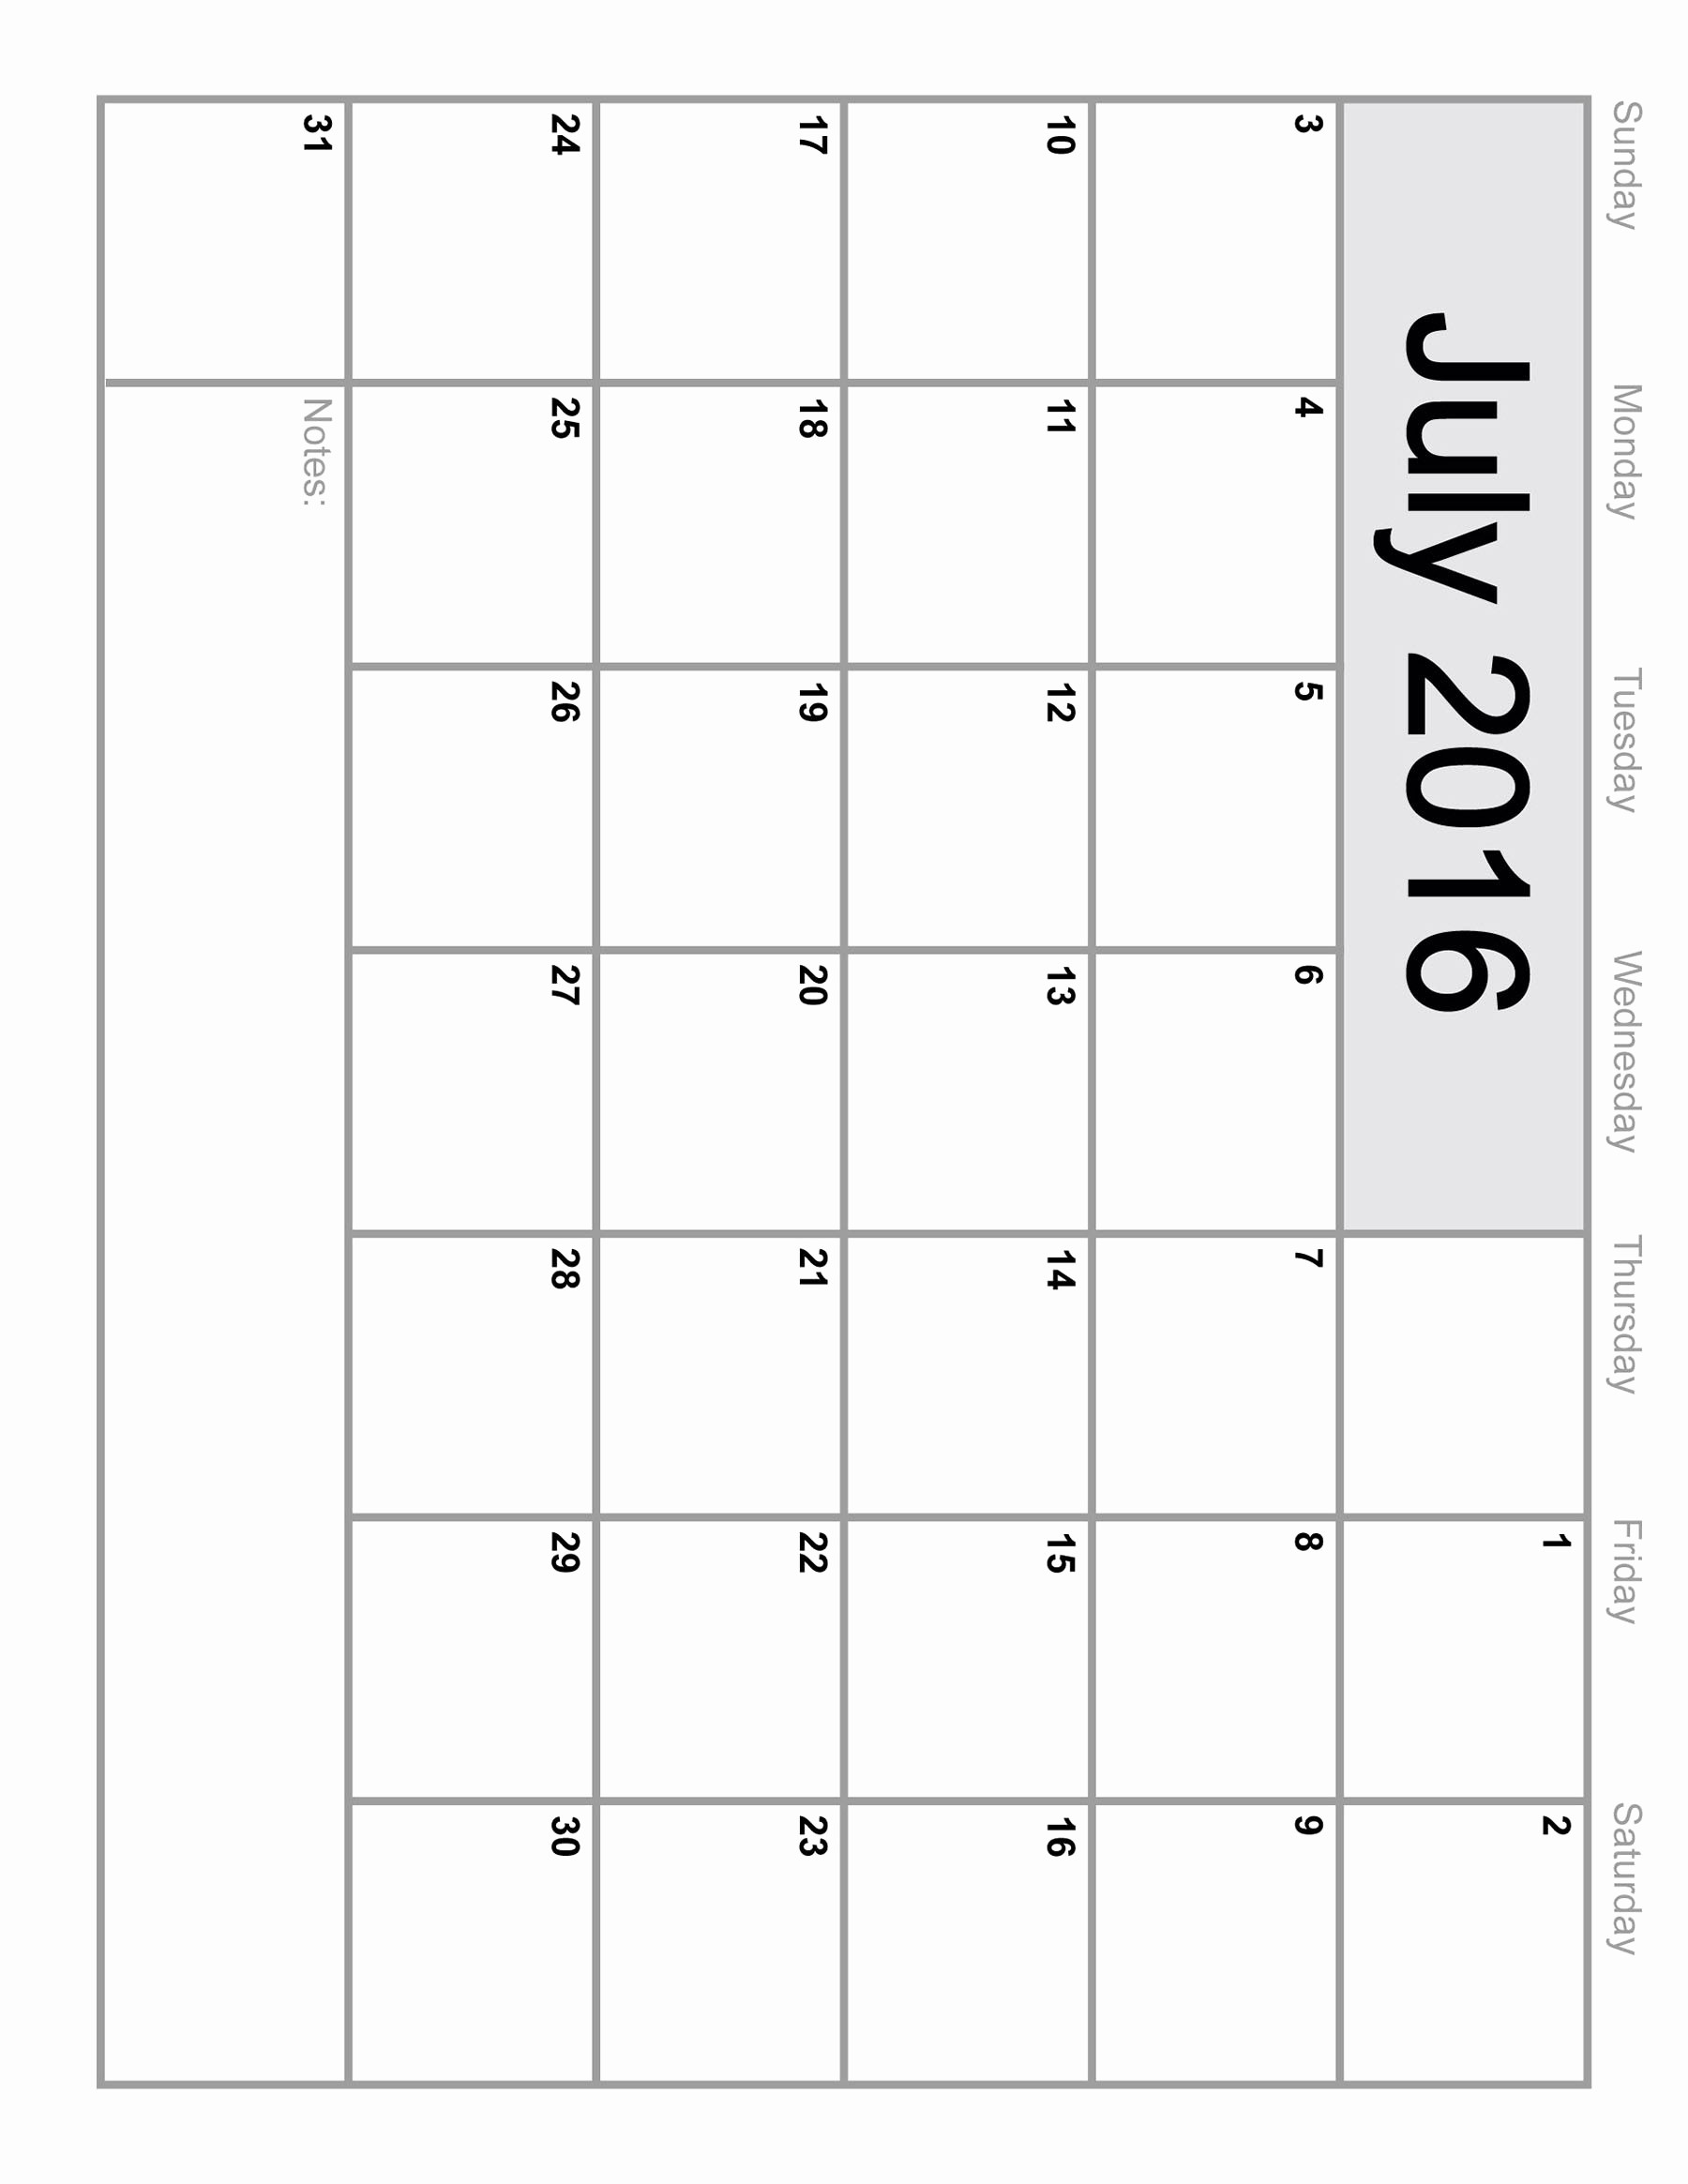 3 Month Calendar 2016 Template Beautiful 3 Month June July August Calendar 2016 Printable